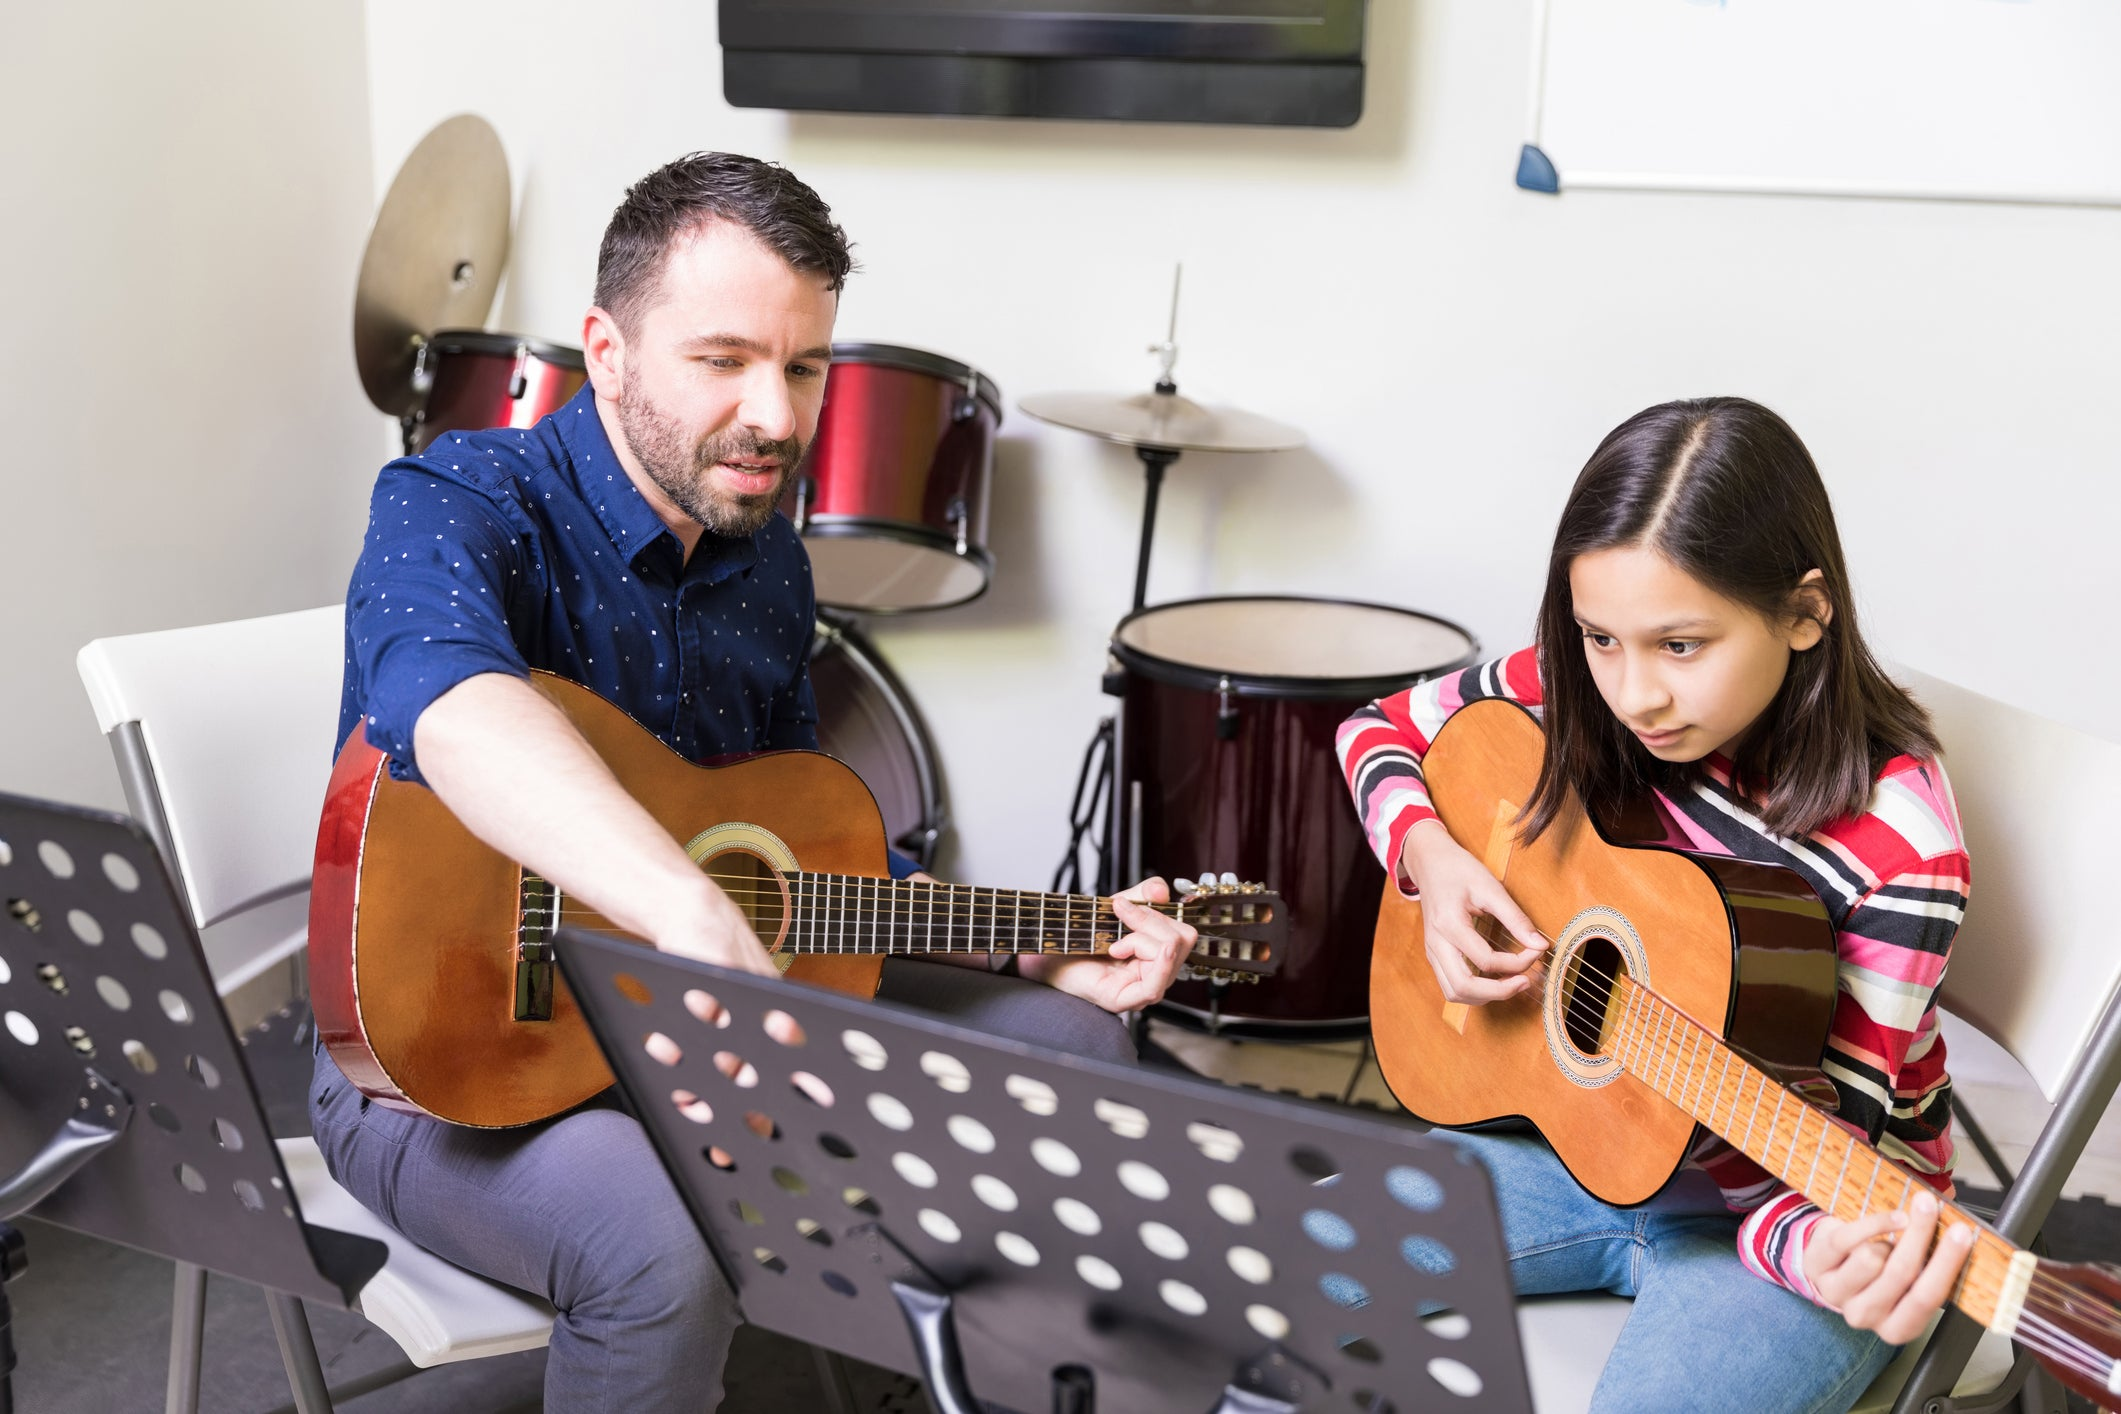 A male music teacher and a young student playing the guitar.